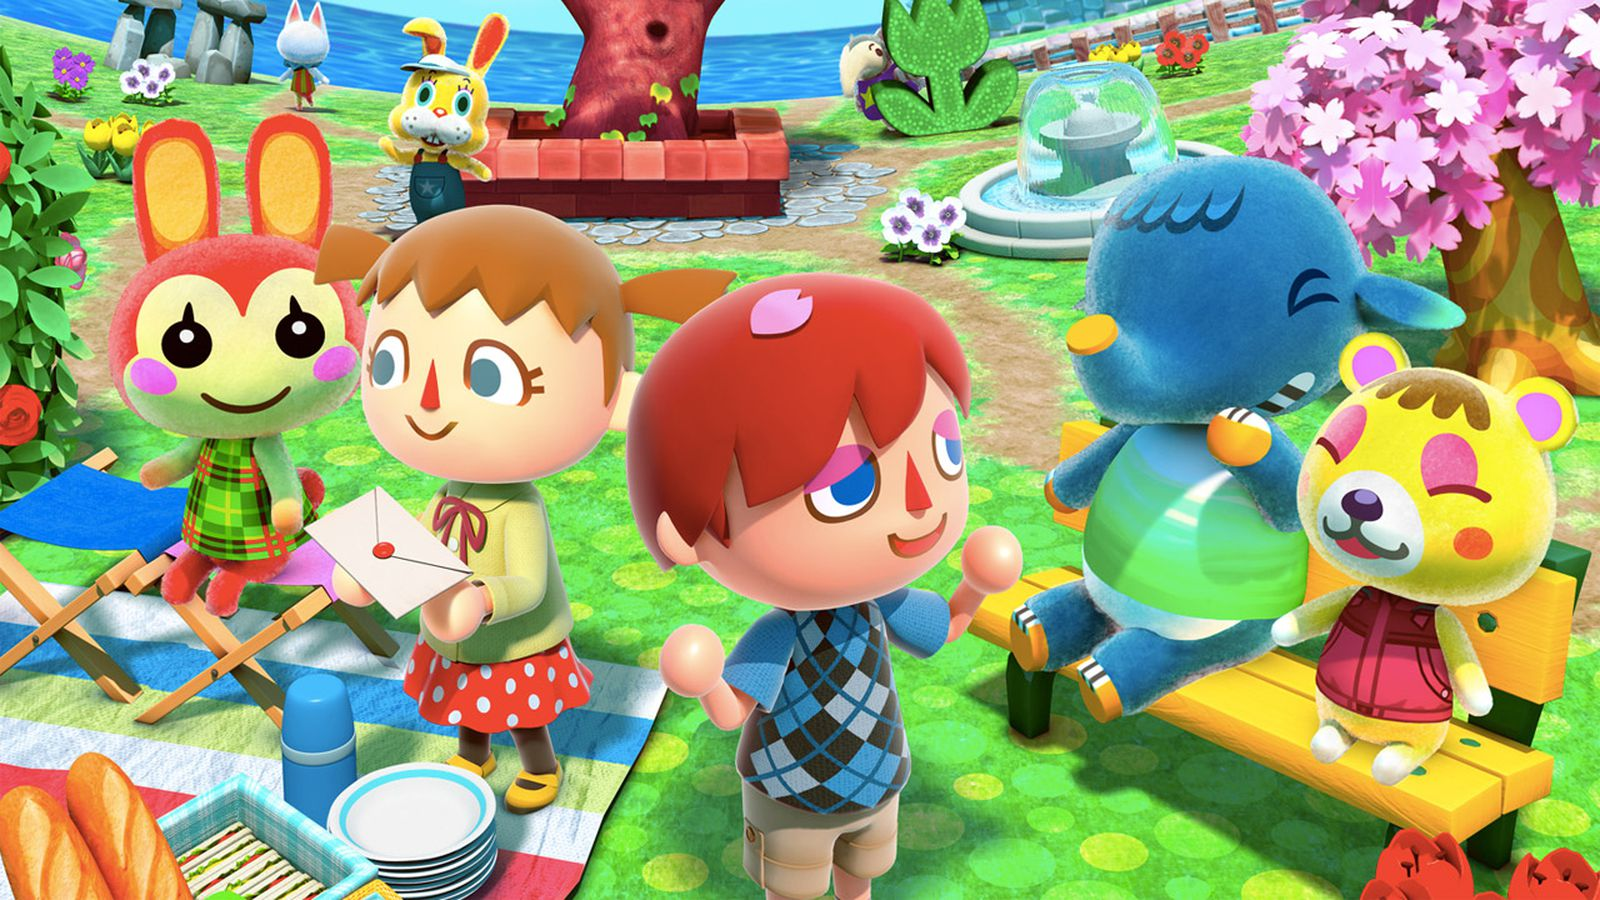 animal crossing new leaf s big amiibo update is available now animal crossing new leaf s big amiibo update is available now polygon